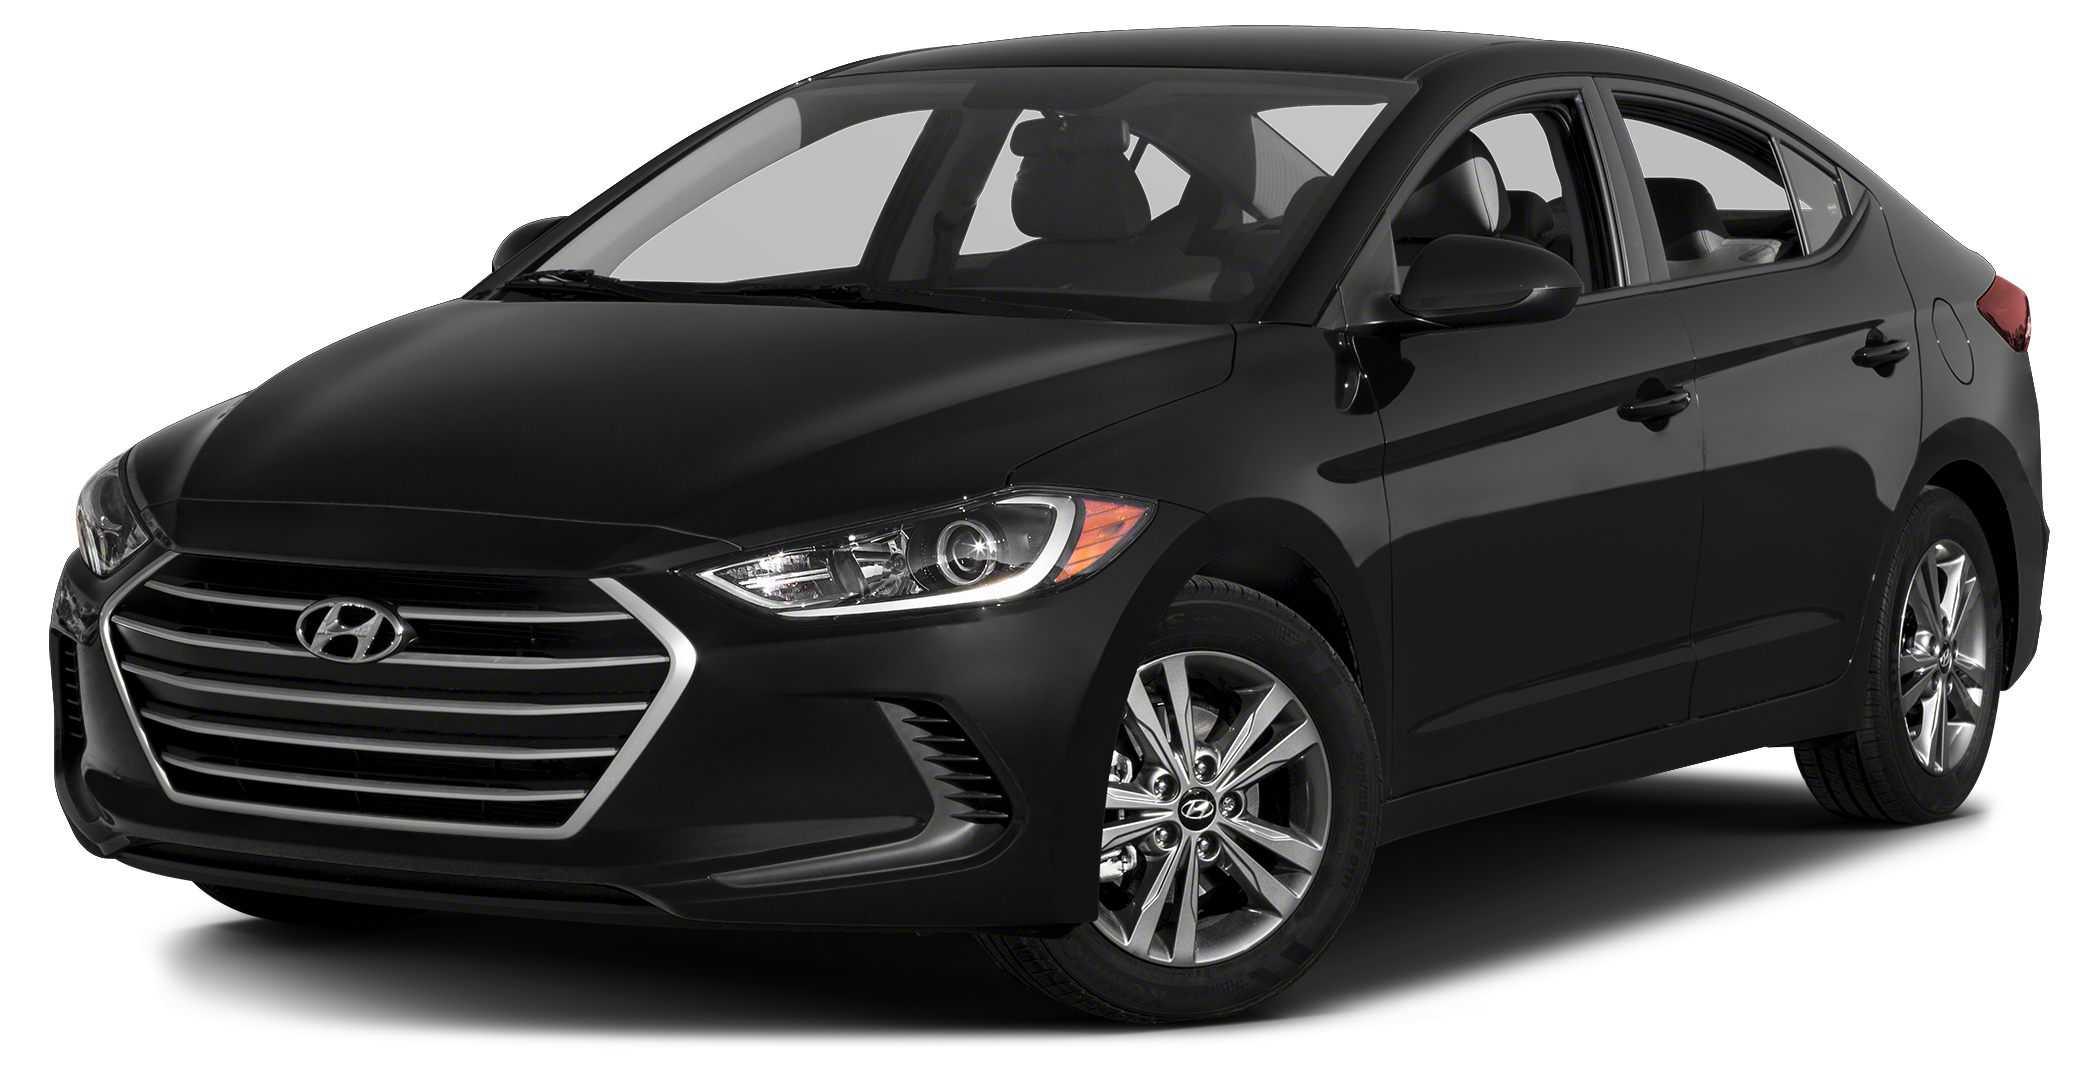 2018 HYUNDAI ELANTRA For Sale In Fort Mill, SC   $16255.00